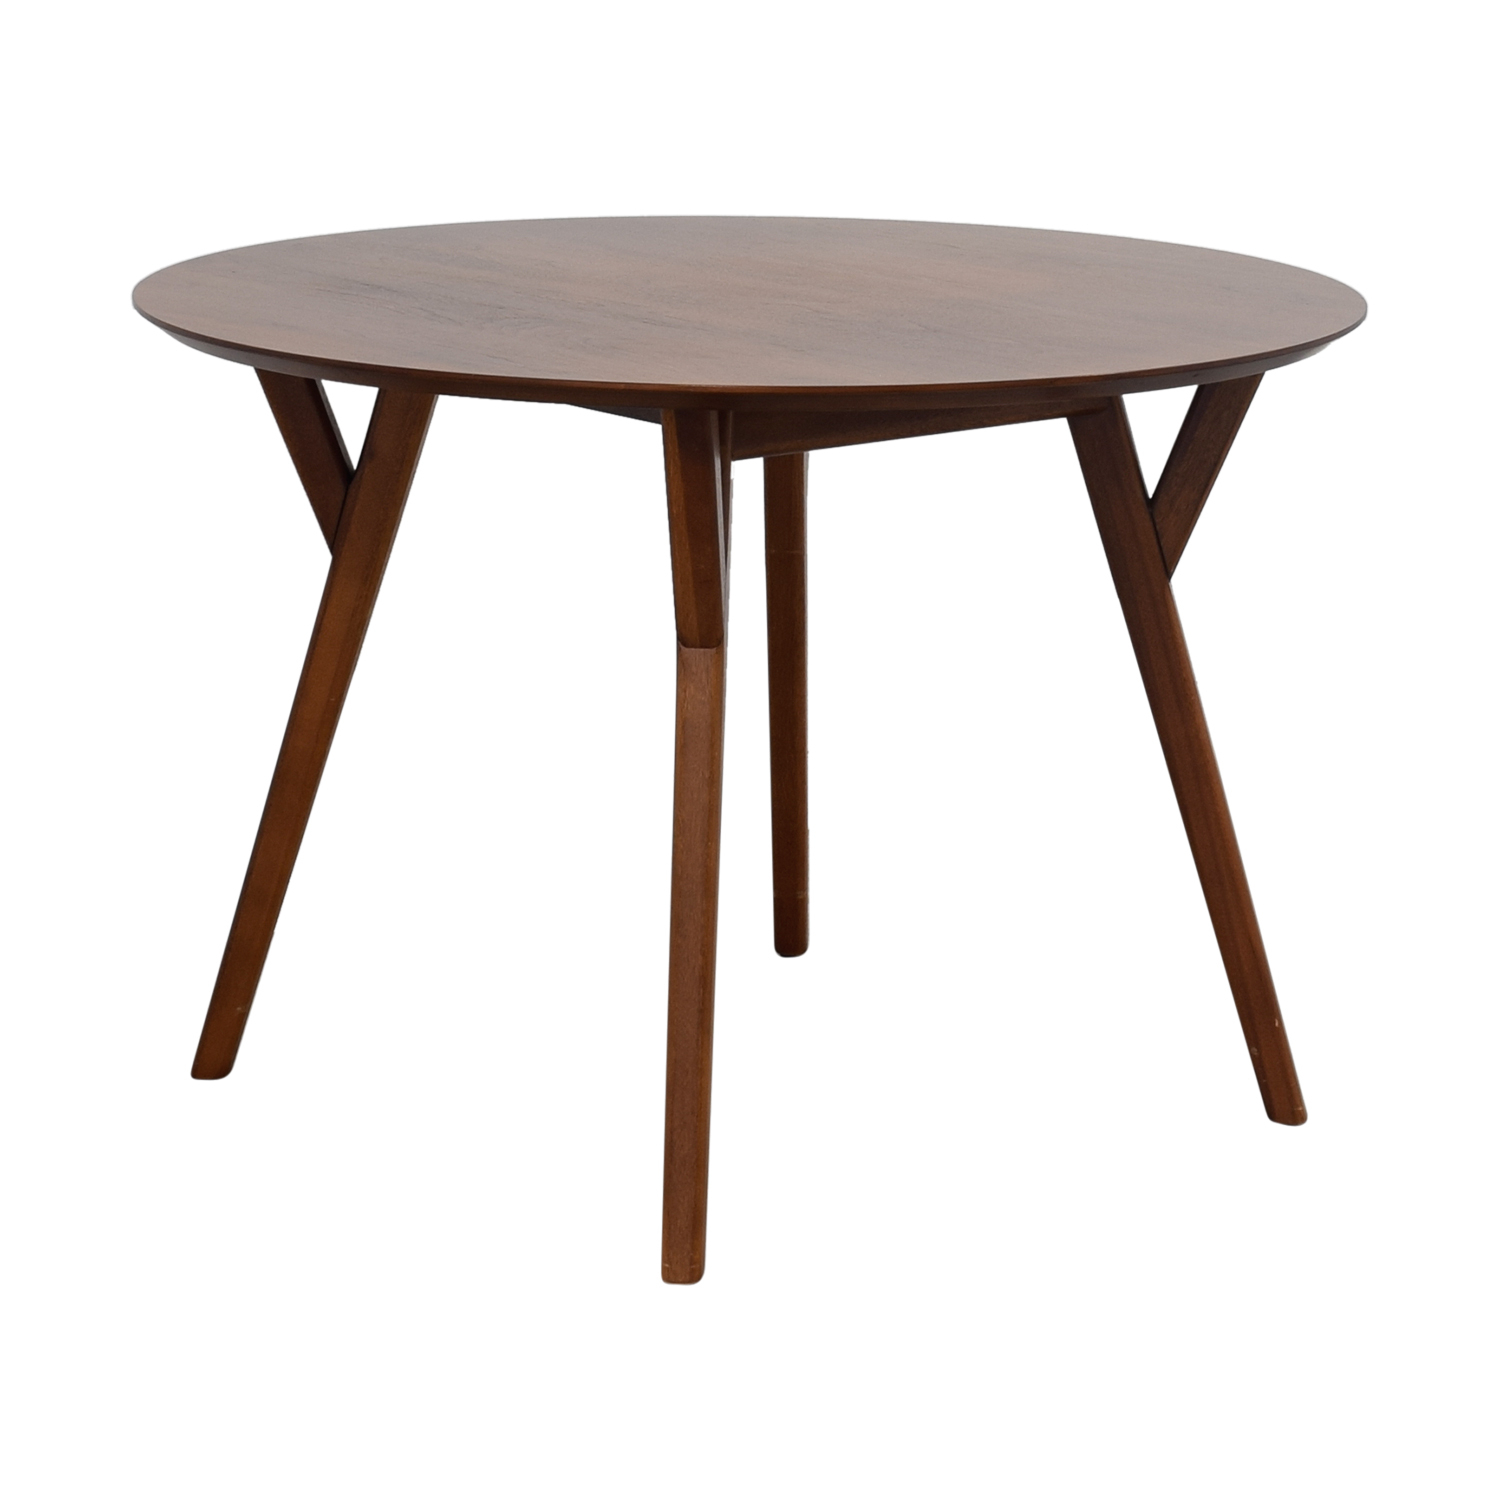 39% Off – West Elm West Elm Mid Century Walnut Round Dining Table / Tables Pertaining To Recent West Dining Tables (View 18 of 25)